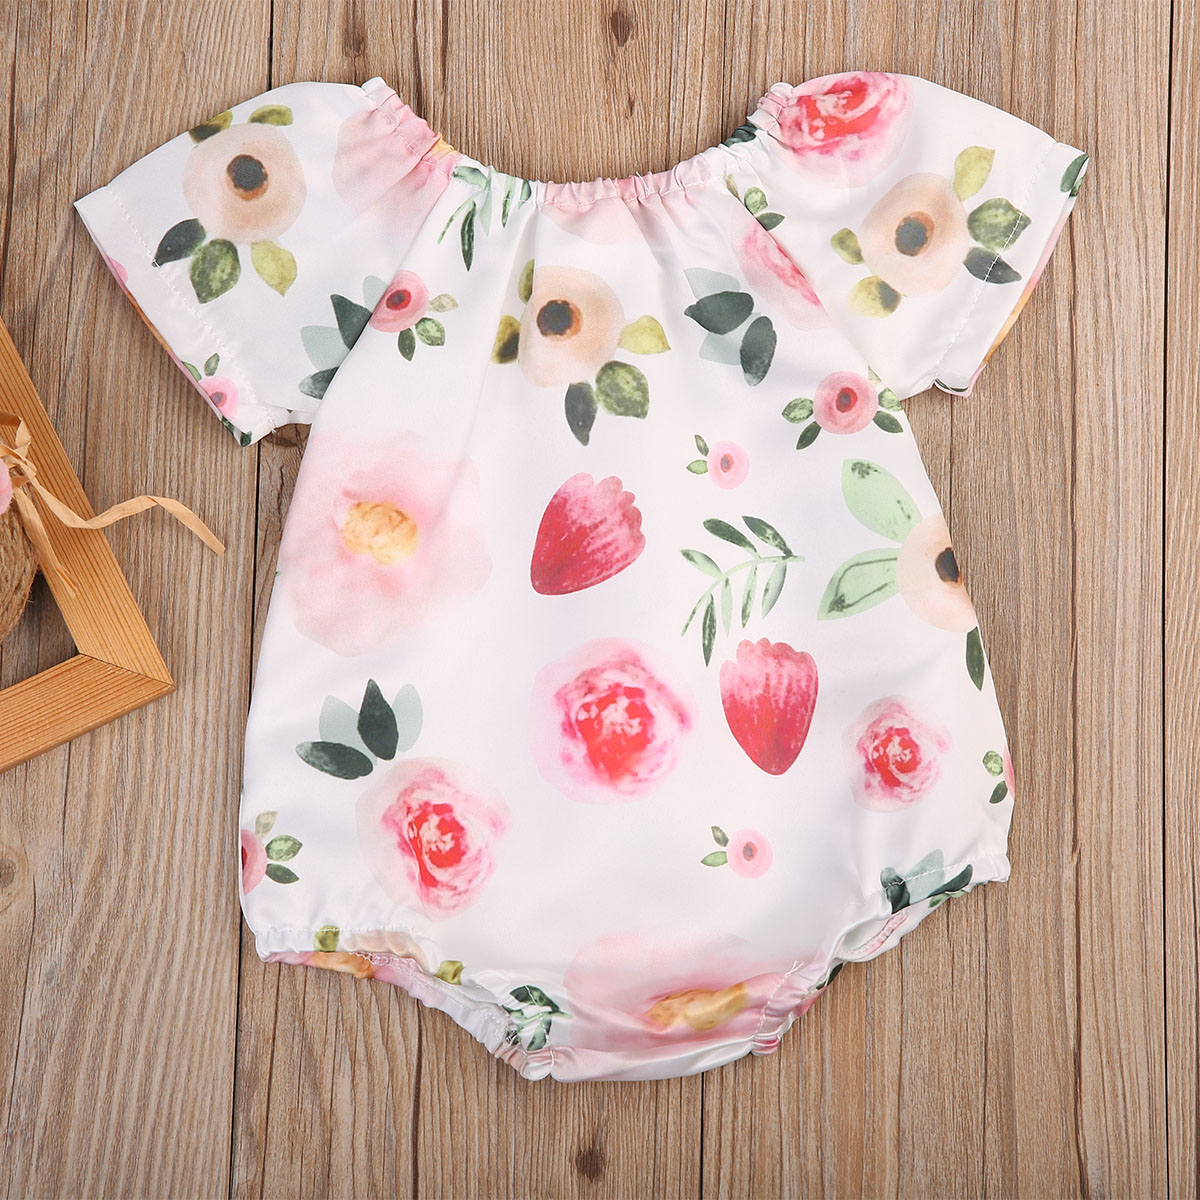 Adorable Infant Baby Girl Floral Rompers Jumpsuit Outfit Sunsuit Clothes